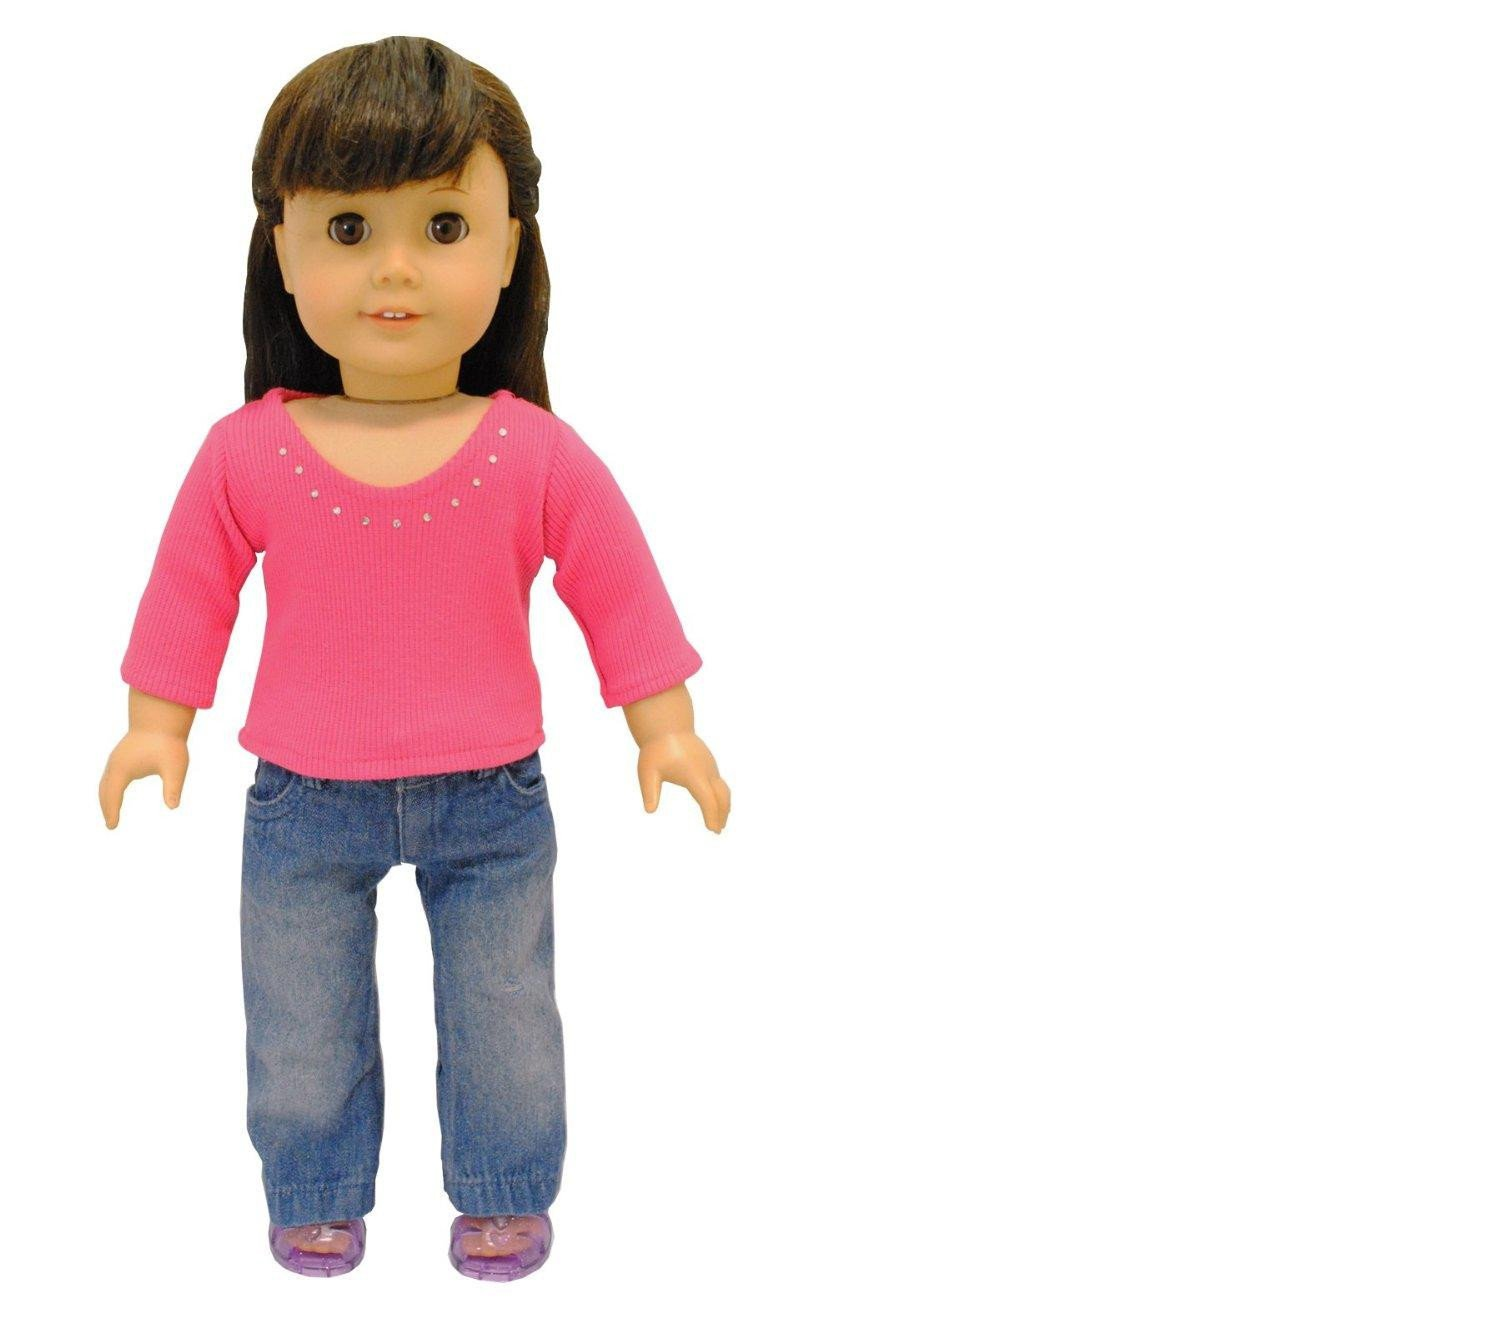 Doll Clothes 2 Piece Doll Clothing Set Fashion Jeans and Long Sleeve Shirt Fits American... by Pink Butterfly Closet